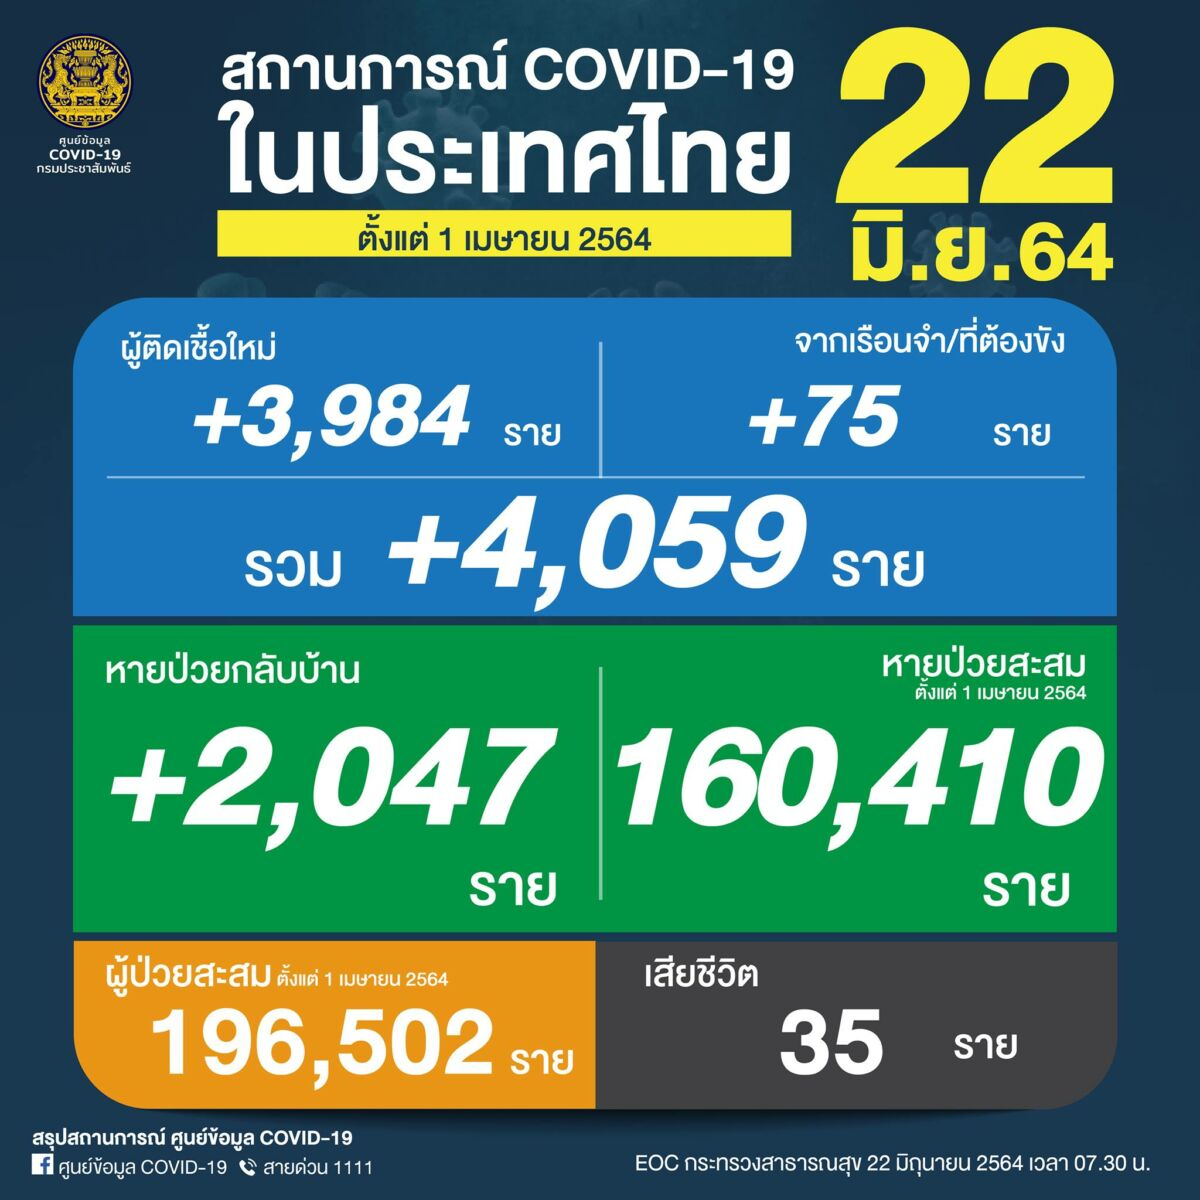 Tuesday Covid Update: 4,059 new cases and 35 deaths | News by Thaiger